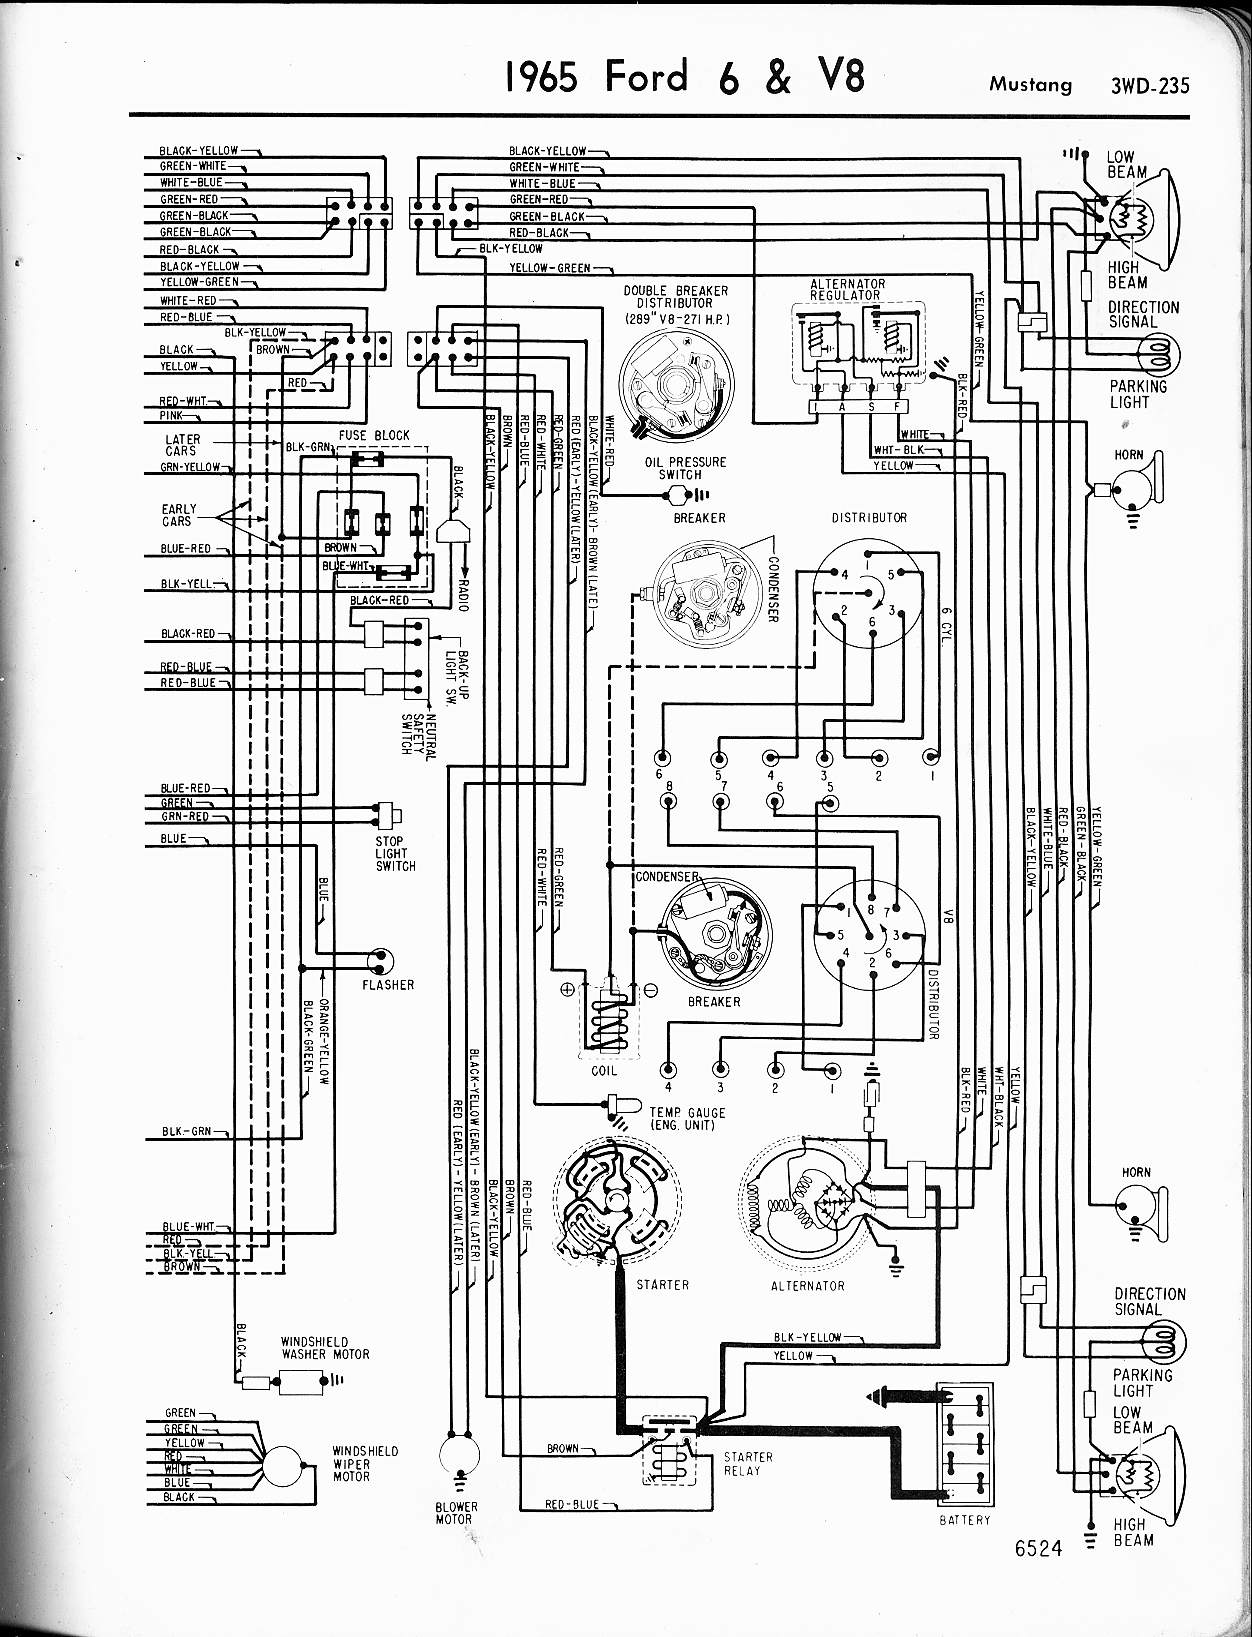 MWire5765 235 mustang wiring harness diagram 2005 2009 mustang wiring harness 1965 ford mustang wiring diagrams at crackthecode.co